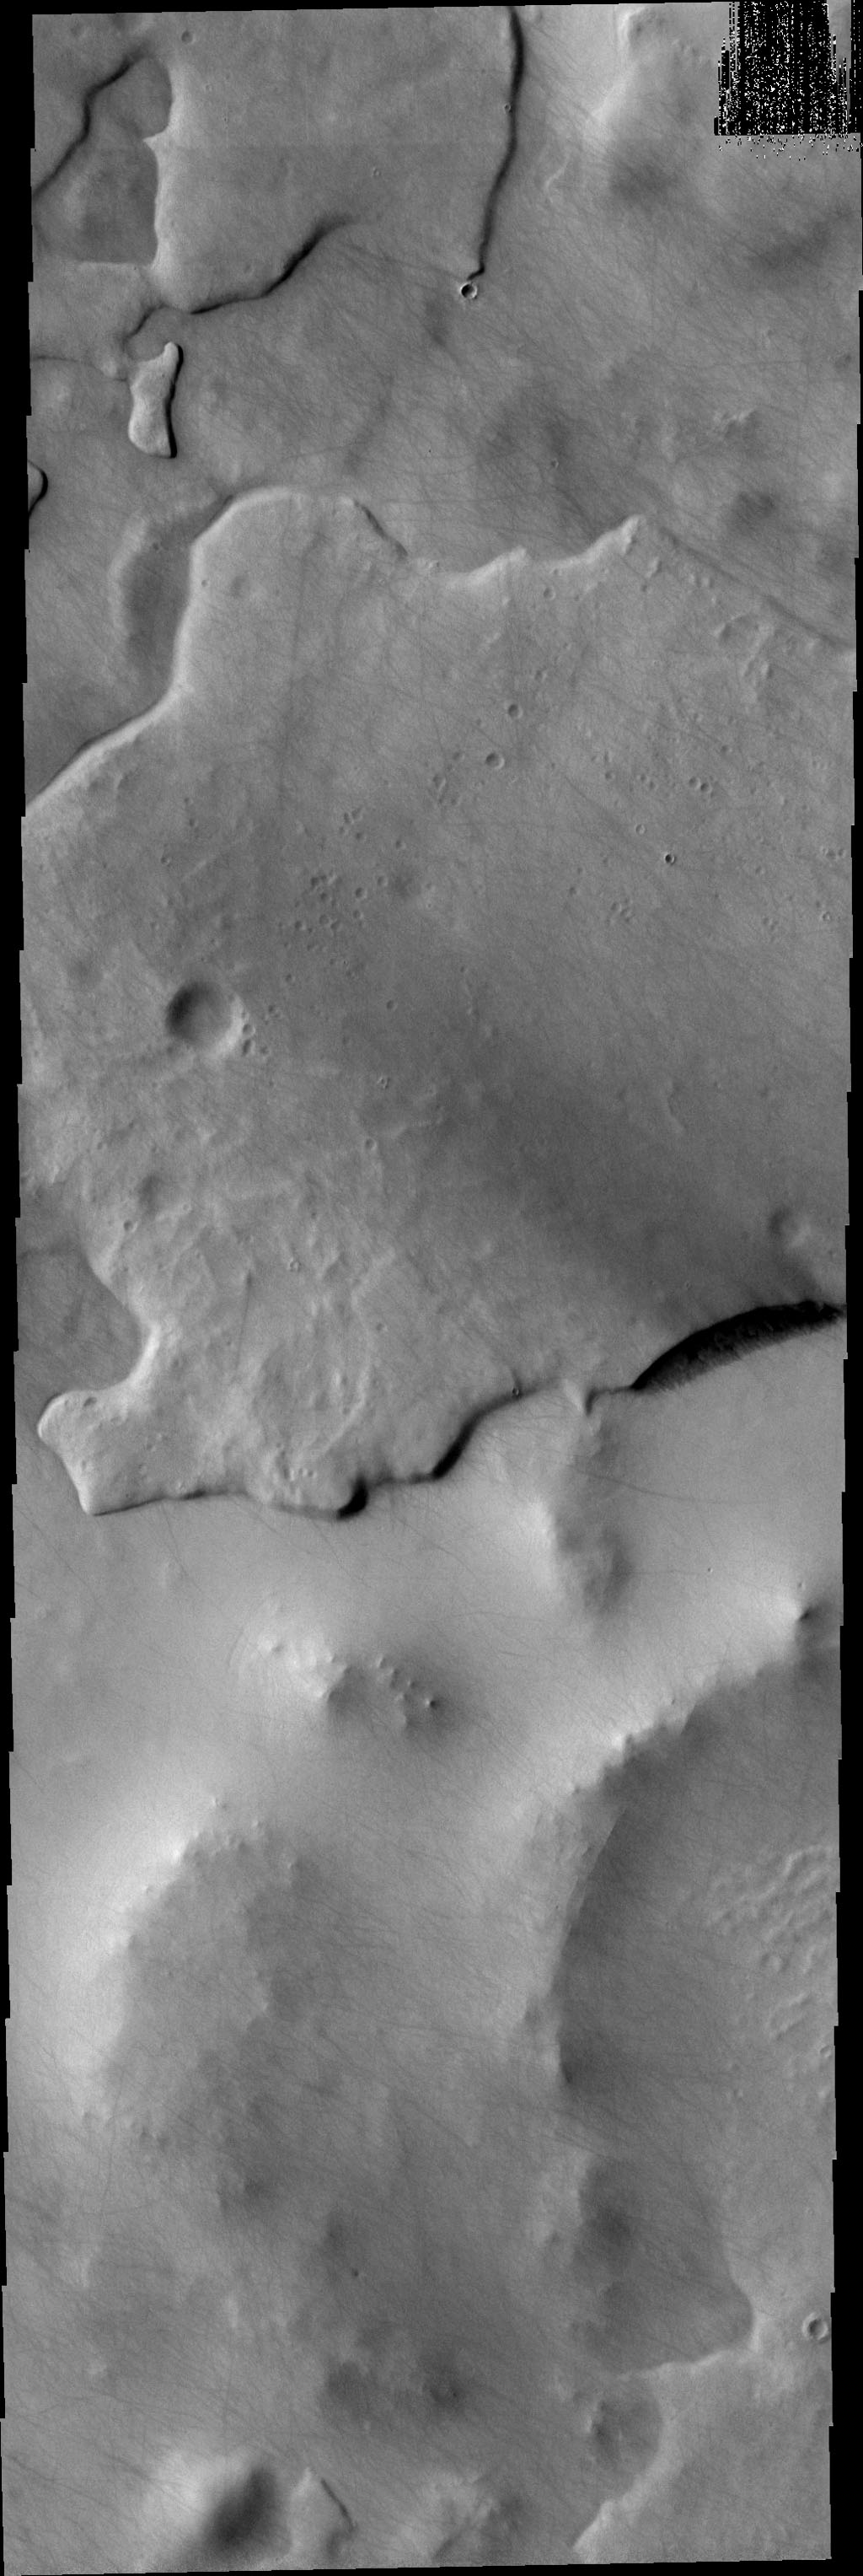 This image from NASA's Mars Odyssey spacecraft shows martian terrain that looks like a giant fish with open mouth.